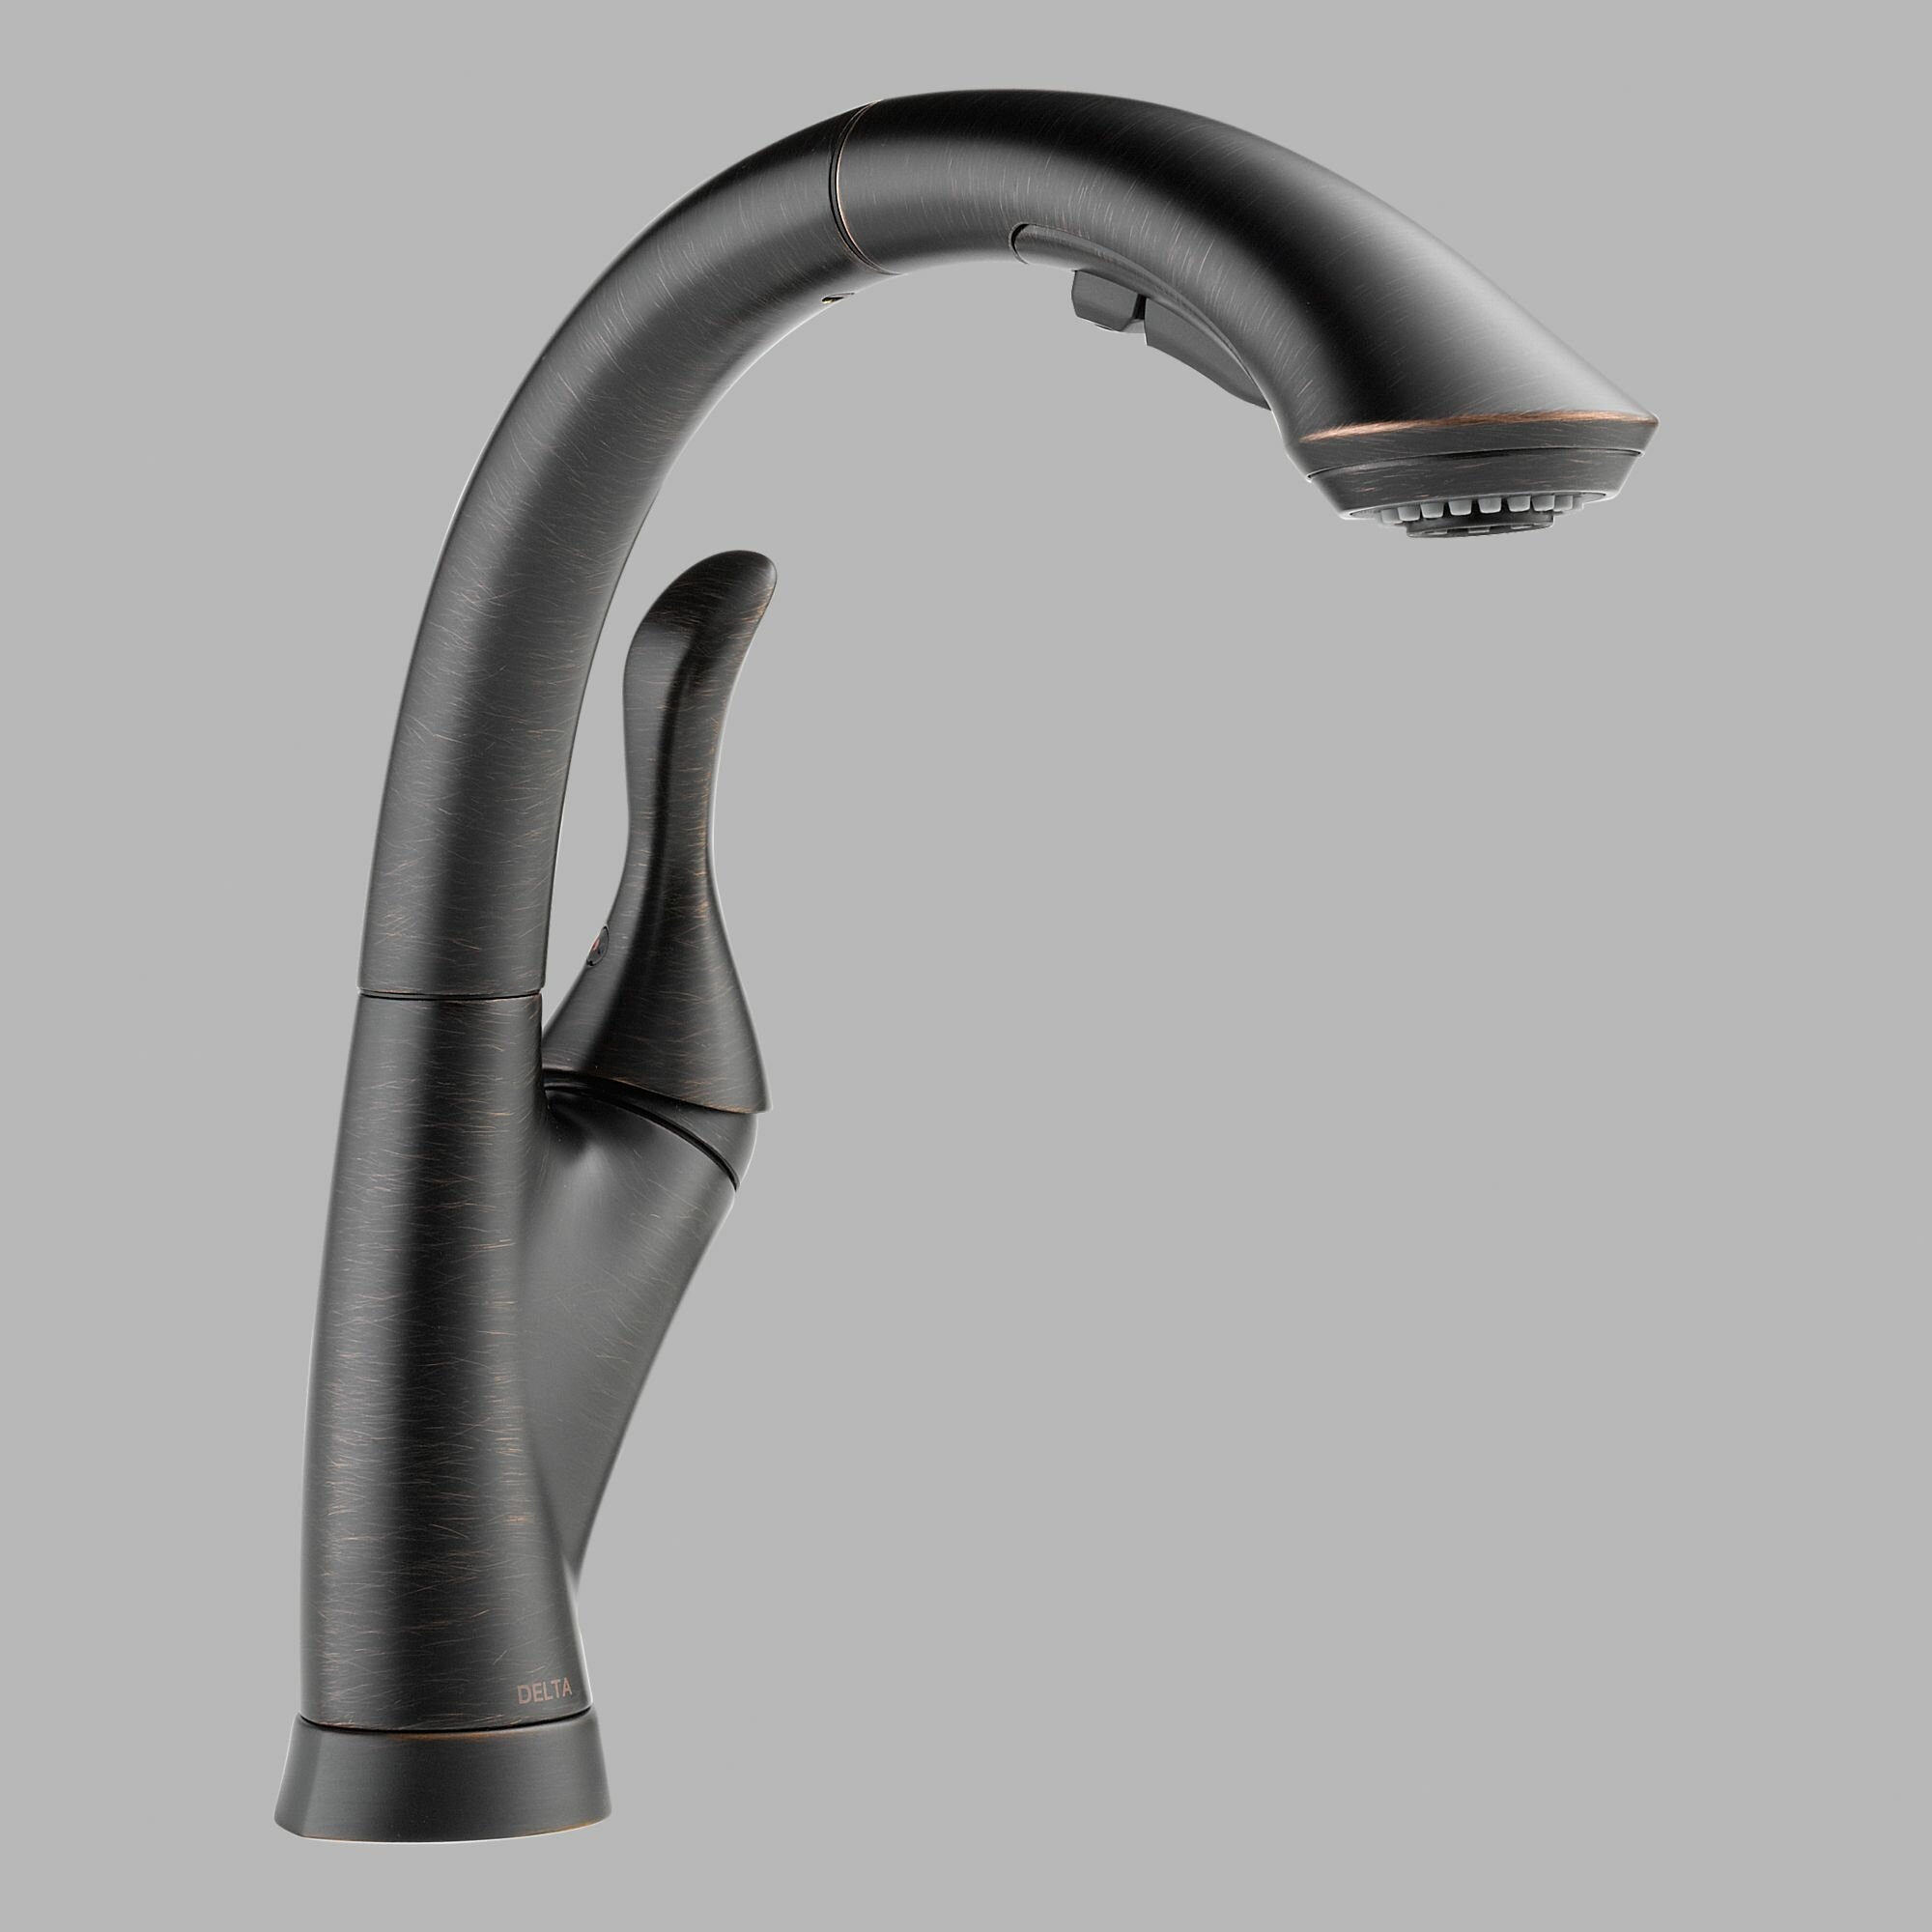 Delta linden single handle kitchen faucet